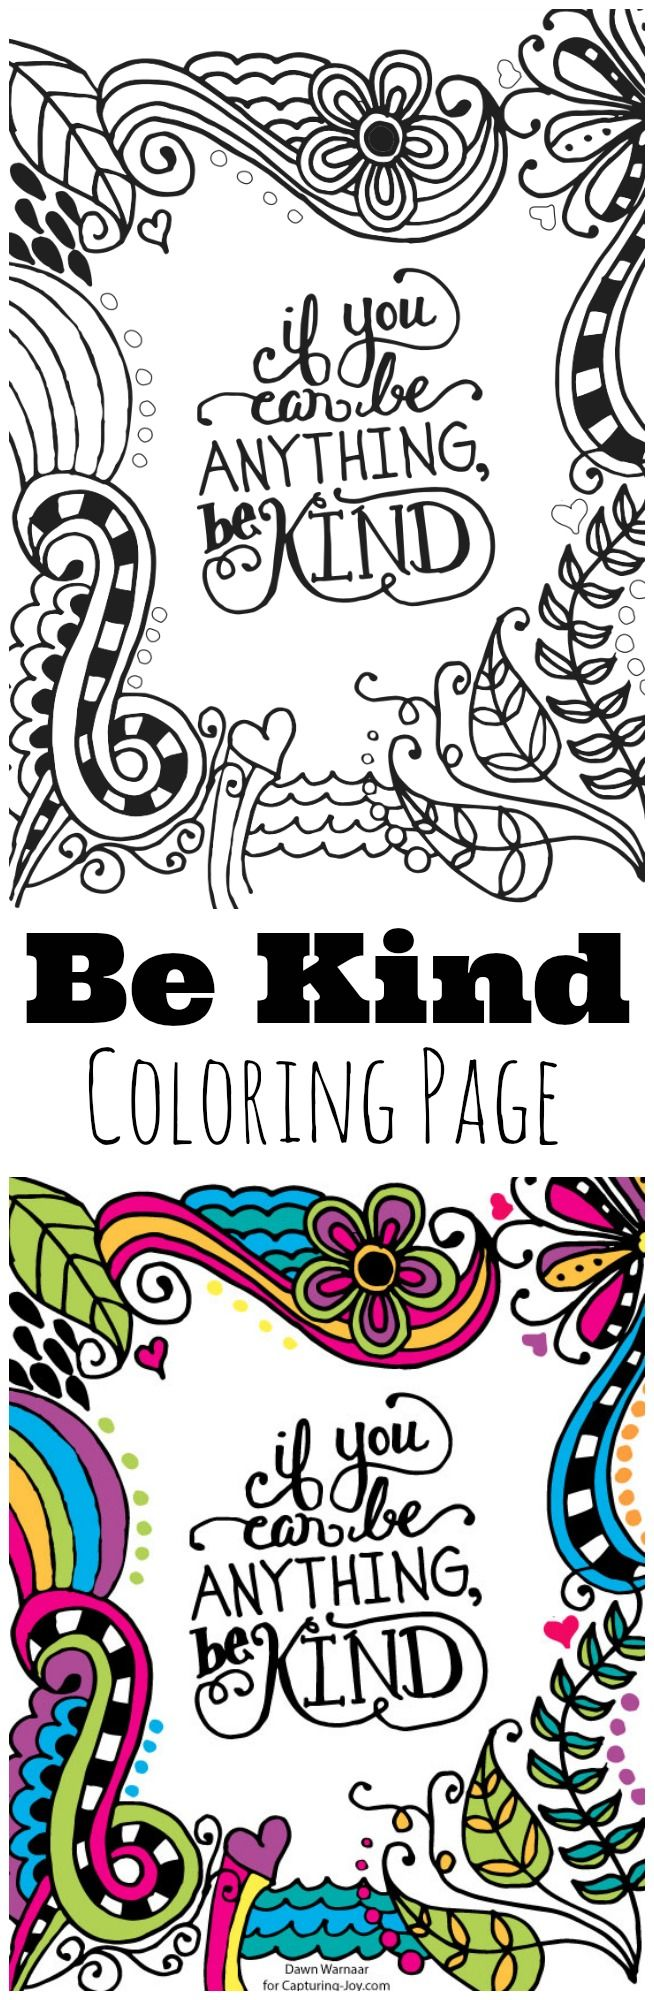 best 25 kids coloring ideas on pinterest kids coloring sheets